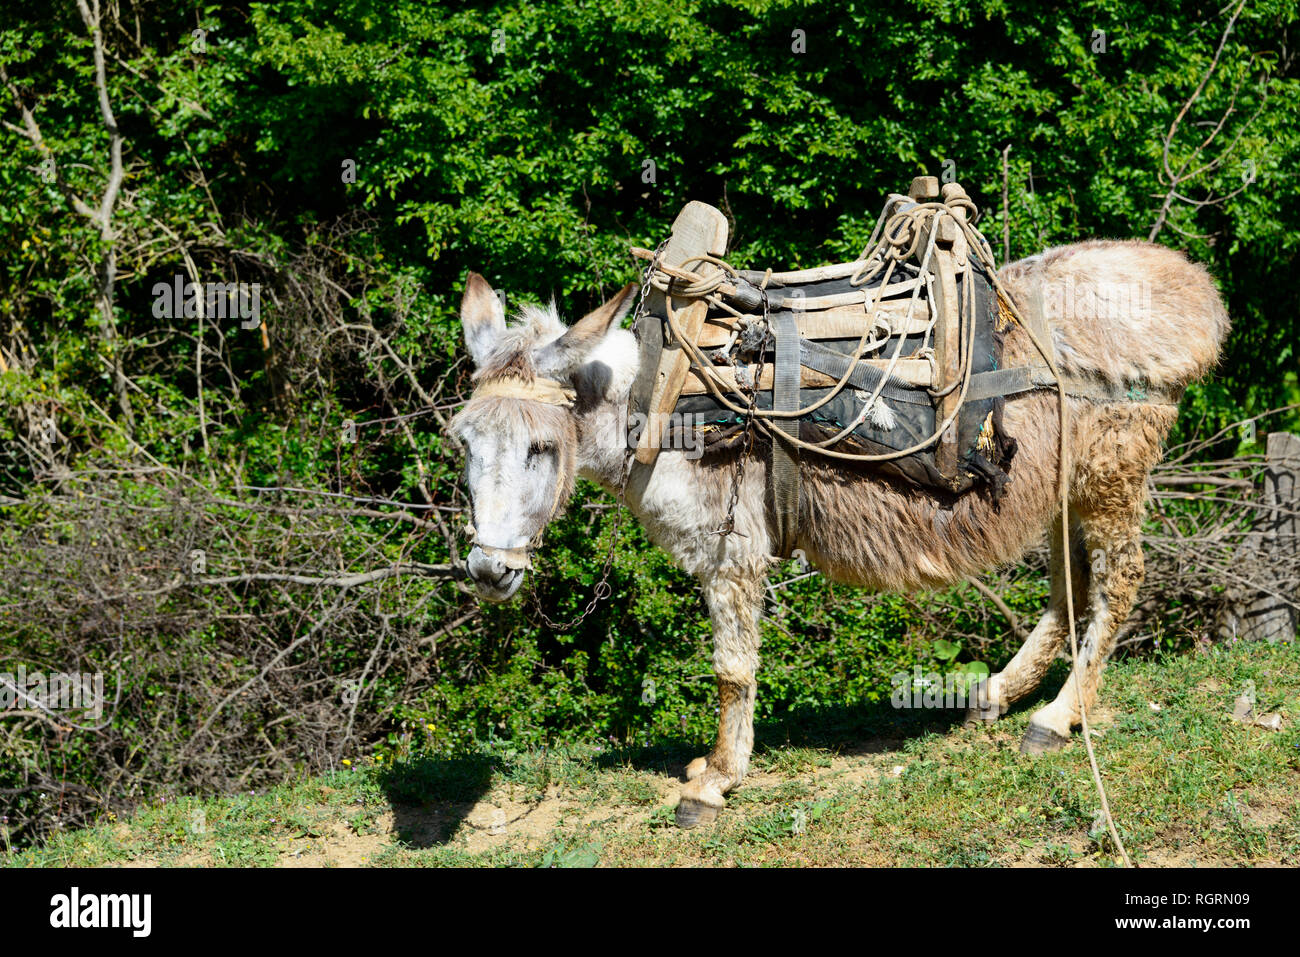 Domestic Donkey with packsaddle, southern Albania, Albania Stock Photo